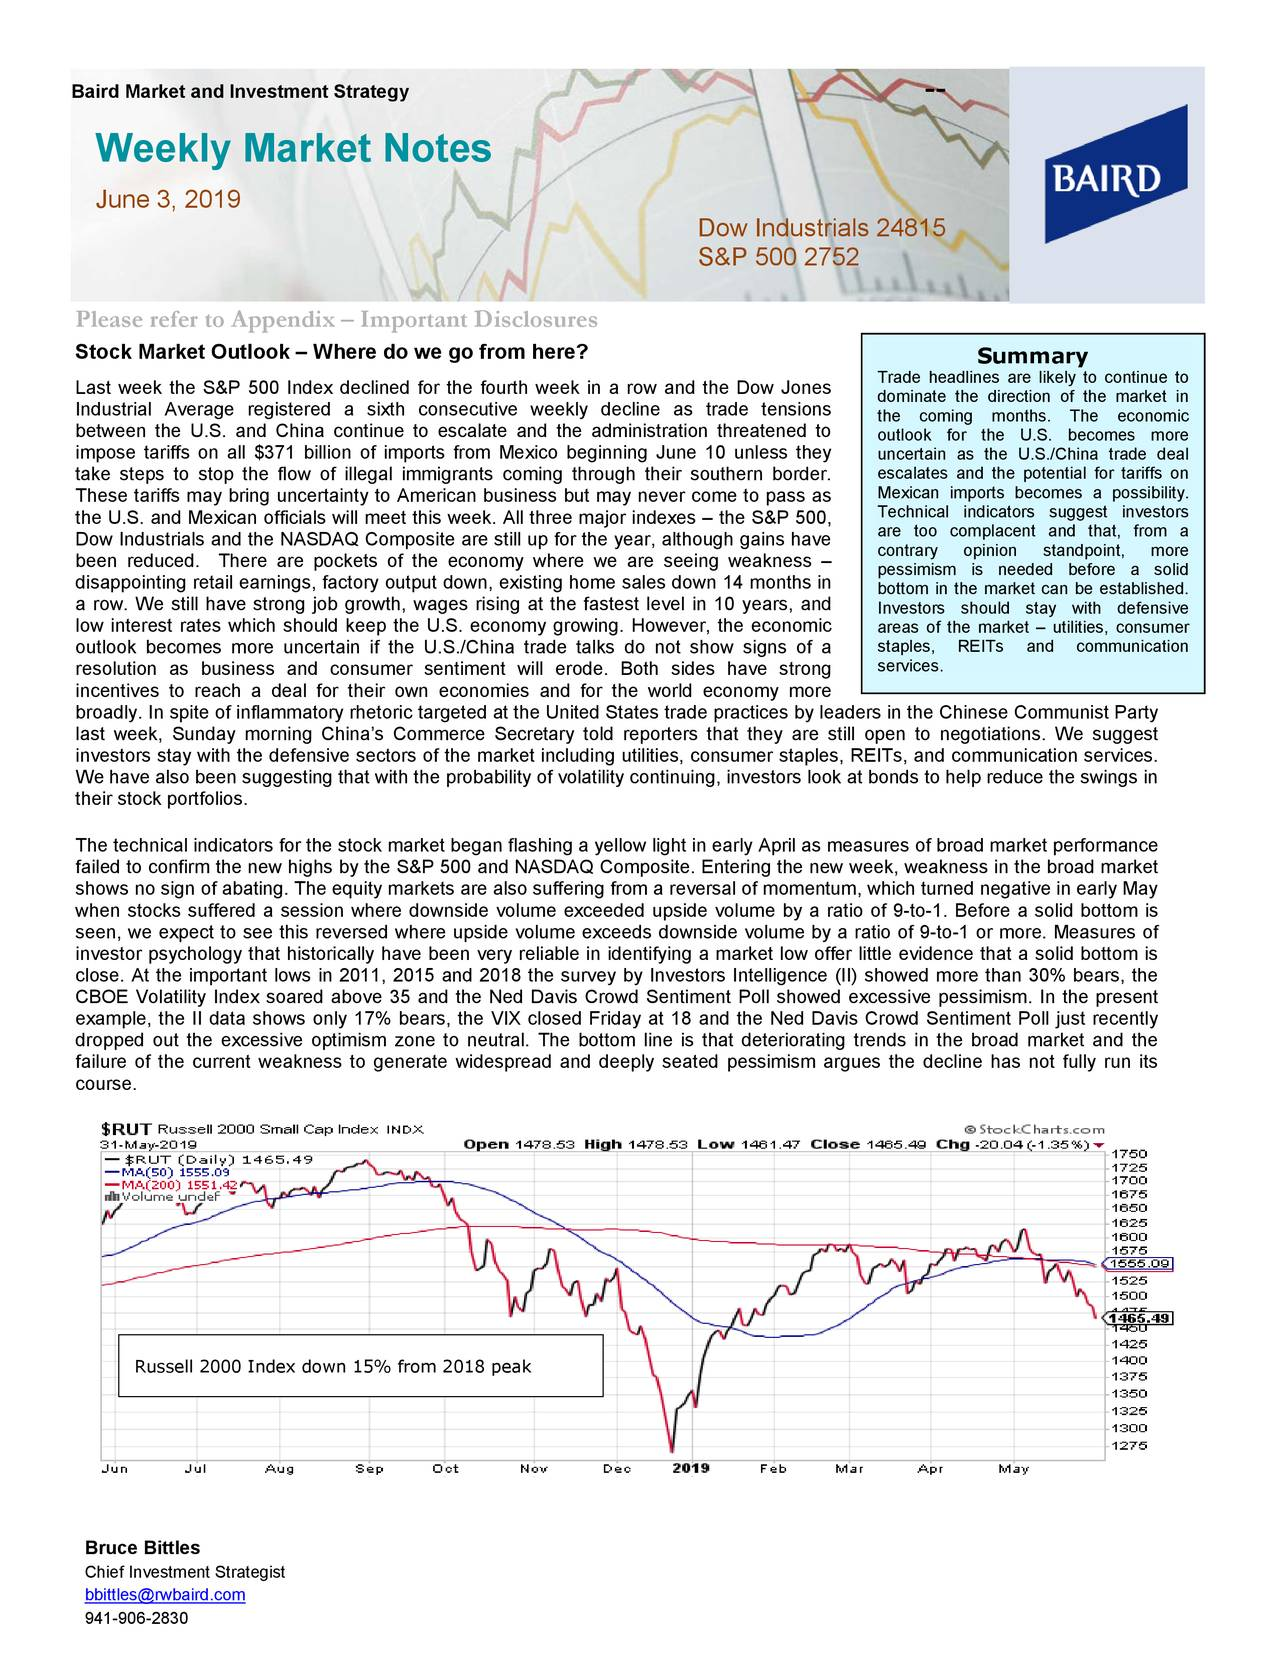 Weekly Market Notes June 3, 2019 Dow Industrials 24815 S&P 500 2752 Please refer to Appendix – Important Disclosures Stock Market Outlook – Where do we go from here? Summary Trade headlines are likely to continue to Last week the S&P 500 Index declined for the fourth week in a row and the Dow Jones dominate the direction of the market in Industrial Average registered a sixth consecutive weekly decline as trade tensions the coming months. The economic between the U.S. and China continue to escalate and the administration threatened to outlook for the U.S. becomes more impose tariffs on all $371 billion of imports from Mexico beginning June 10 unless they uncertain as the U.S./China trade deal take steps to stop the flow of illegal immigrants coming through their southern border. escalates and the potential for tariffs on These tariffs may bring uncertainty to A merican business but may never come to pass as Mexican imports becomes a possi bility. Technical indicators suggest investors the U.S. and Mexican officials will meet this week. All three major indexes the S&P 500, are too complacent and that, from a Dow Industrials and the NASDAQ Composite are still up for the year, although gains have contrary opinion standpoint, more been reduced. There are pockets of the economy where we are seeing weakness – pessimism is needed before a solid disappointing retail earnings, factory output down, existing home sales down 14 months in bottom in the market can be established. a row. We still have strong job growth, wages rising at the fastest level in10 years, and Investors should stay with defensive low interest rates which should keep the U.S. economy growing. However, the economic areas of the market – utilities, consumer outlook becomes more uncertain if the U.S./China trade talks do not show signs of a staples, REITs and communication resolution as business and consumer sentiment will erode. Both sides have s trong services. incentives to reach a deal for their own econom